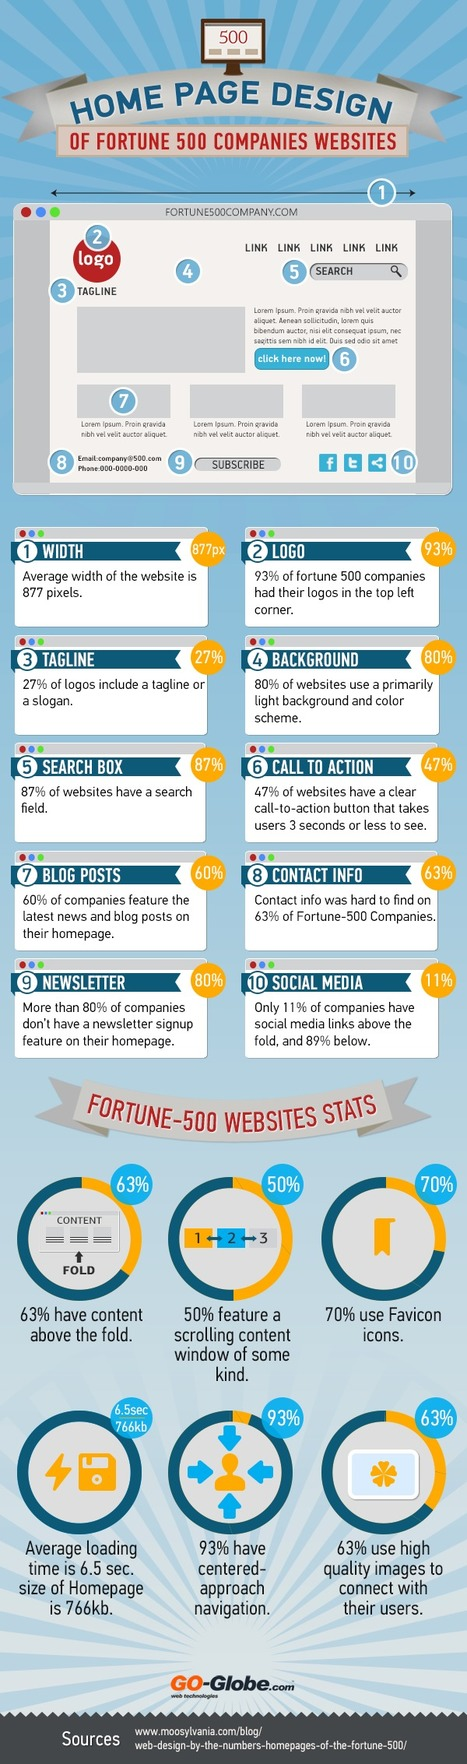 Web Design Trends Of Fortune 500 Companies [Infographic] | Writing for Social Media | Scoop.it